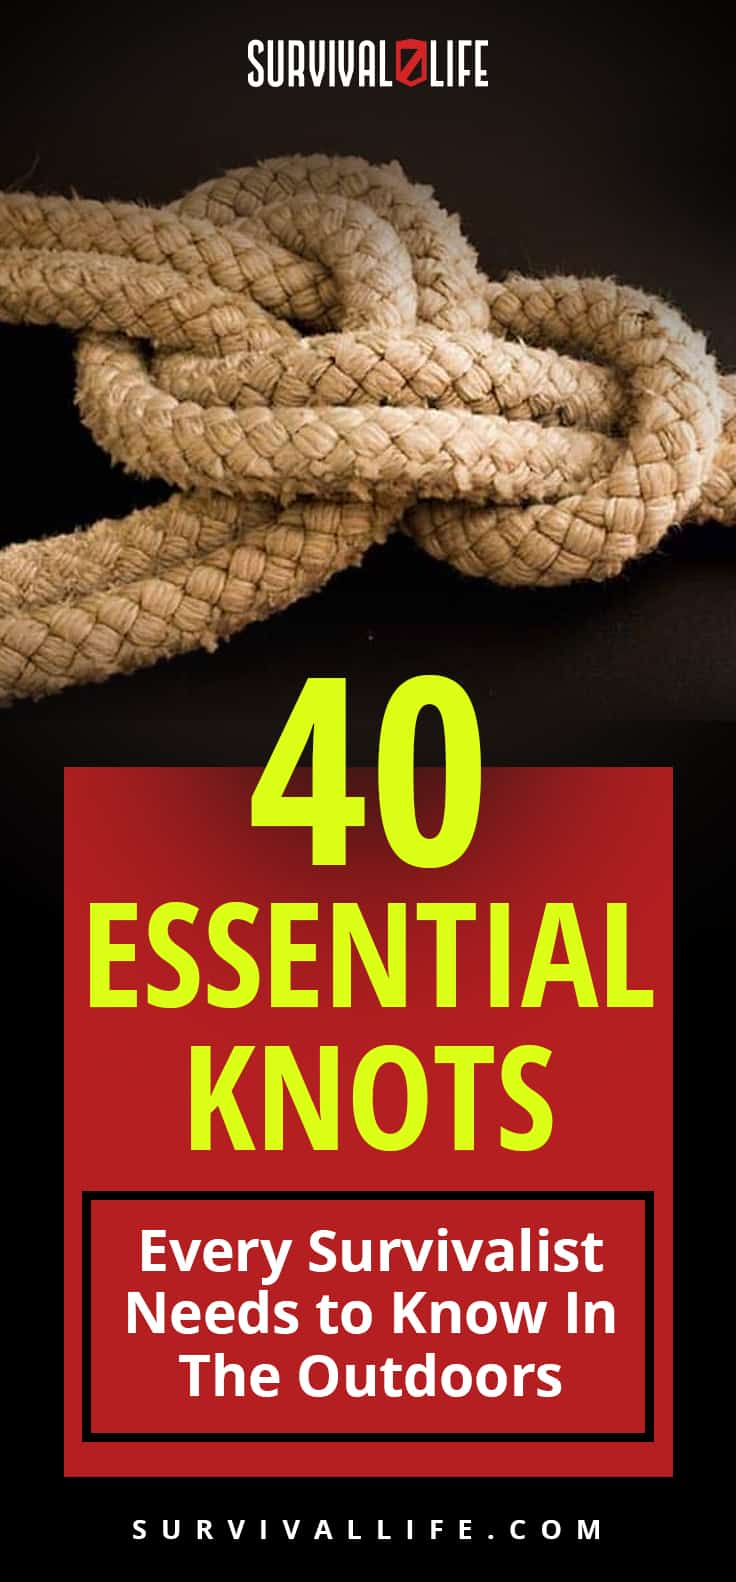 Essential Knots Every Survivalist Needs To Know | https://survivallife.com/40-essential-knots/